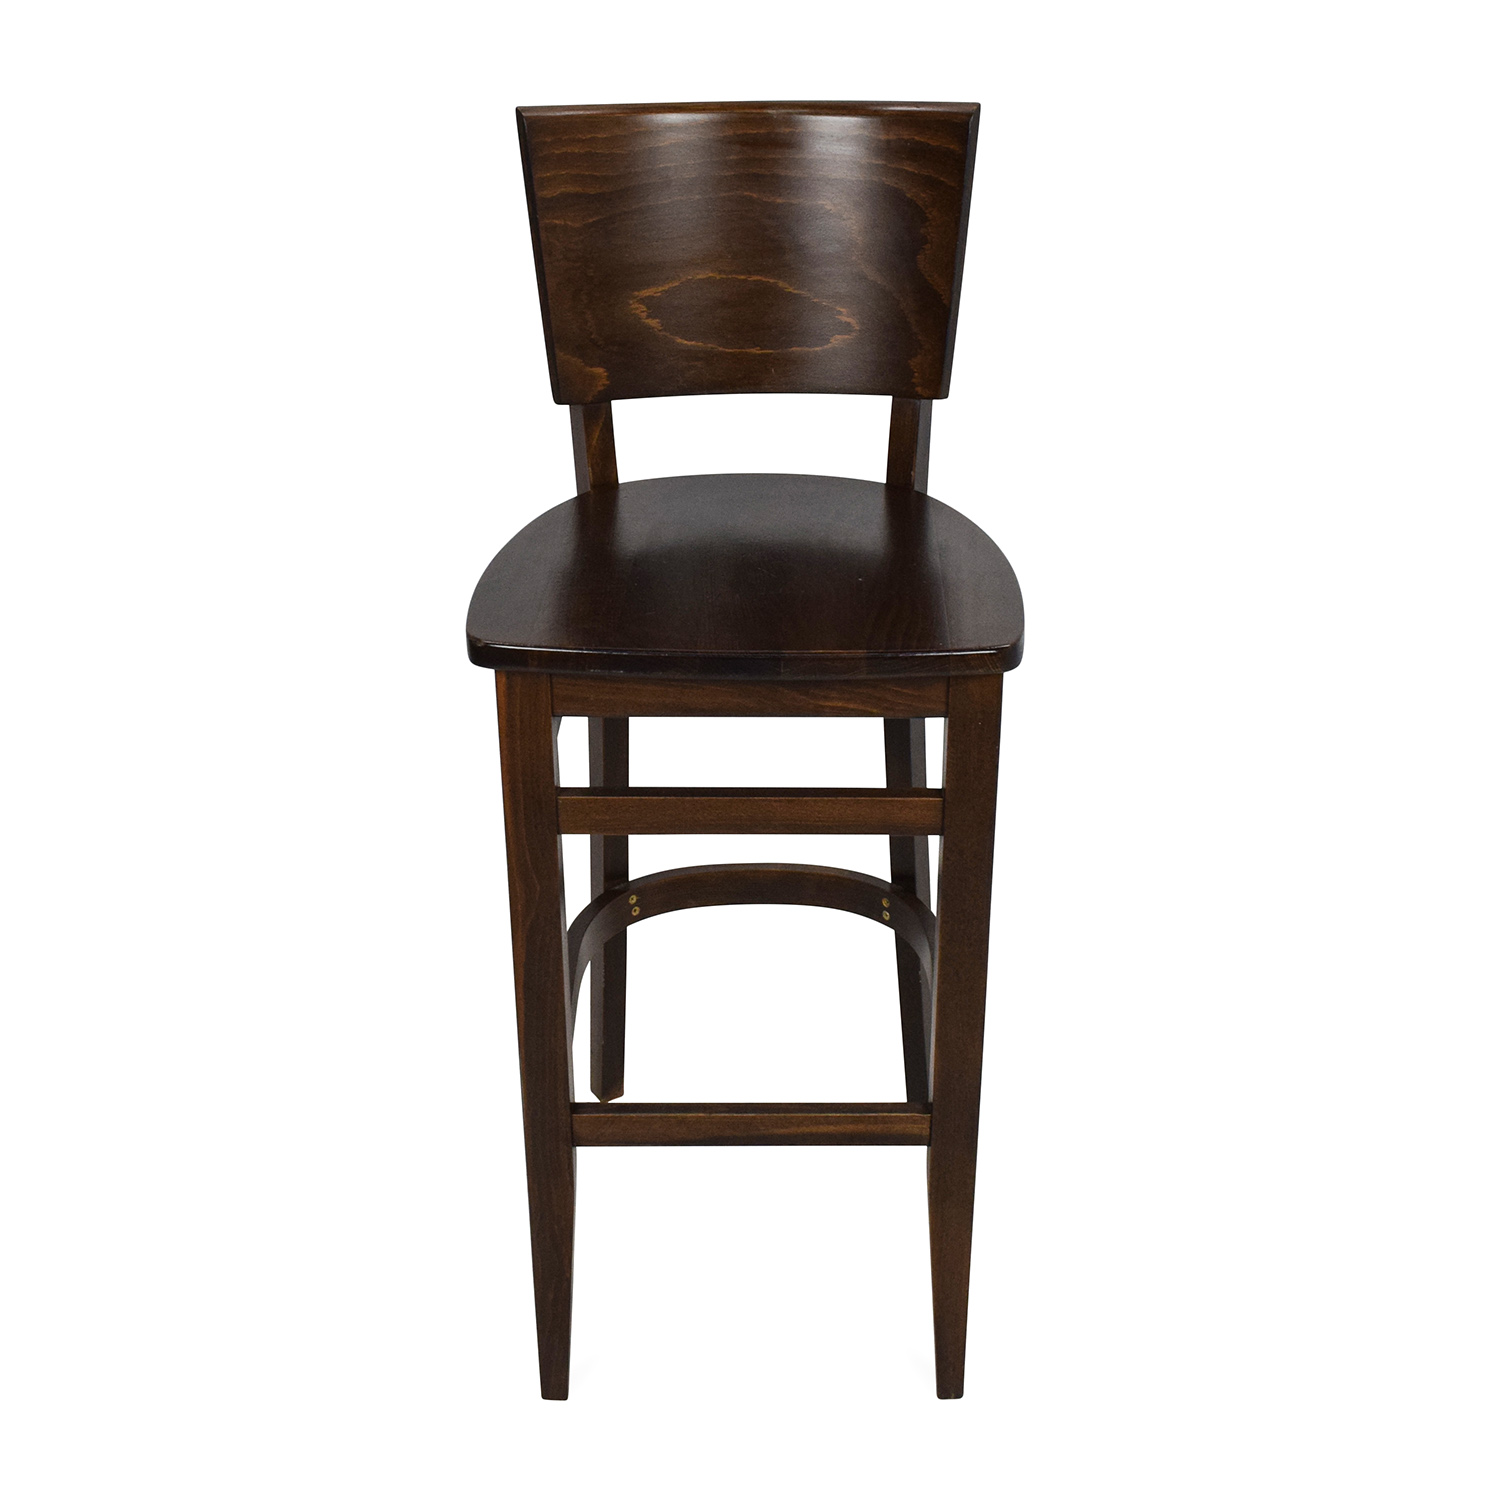 Design Within Reach (DWR) Design Within Reach Kyoto Bar Stool second hand